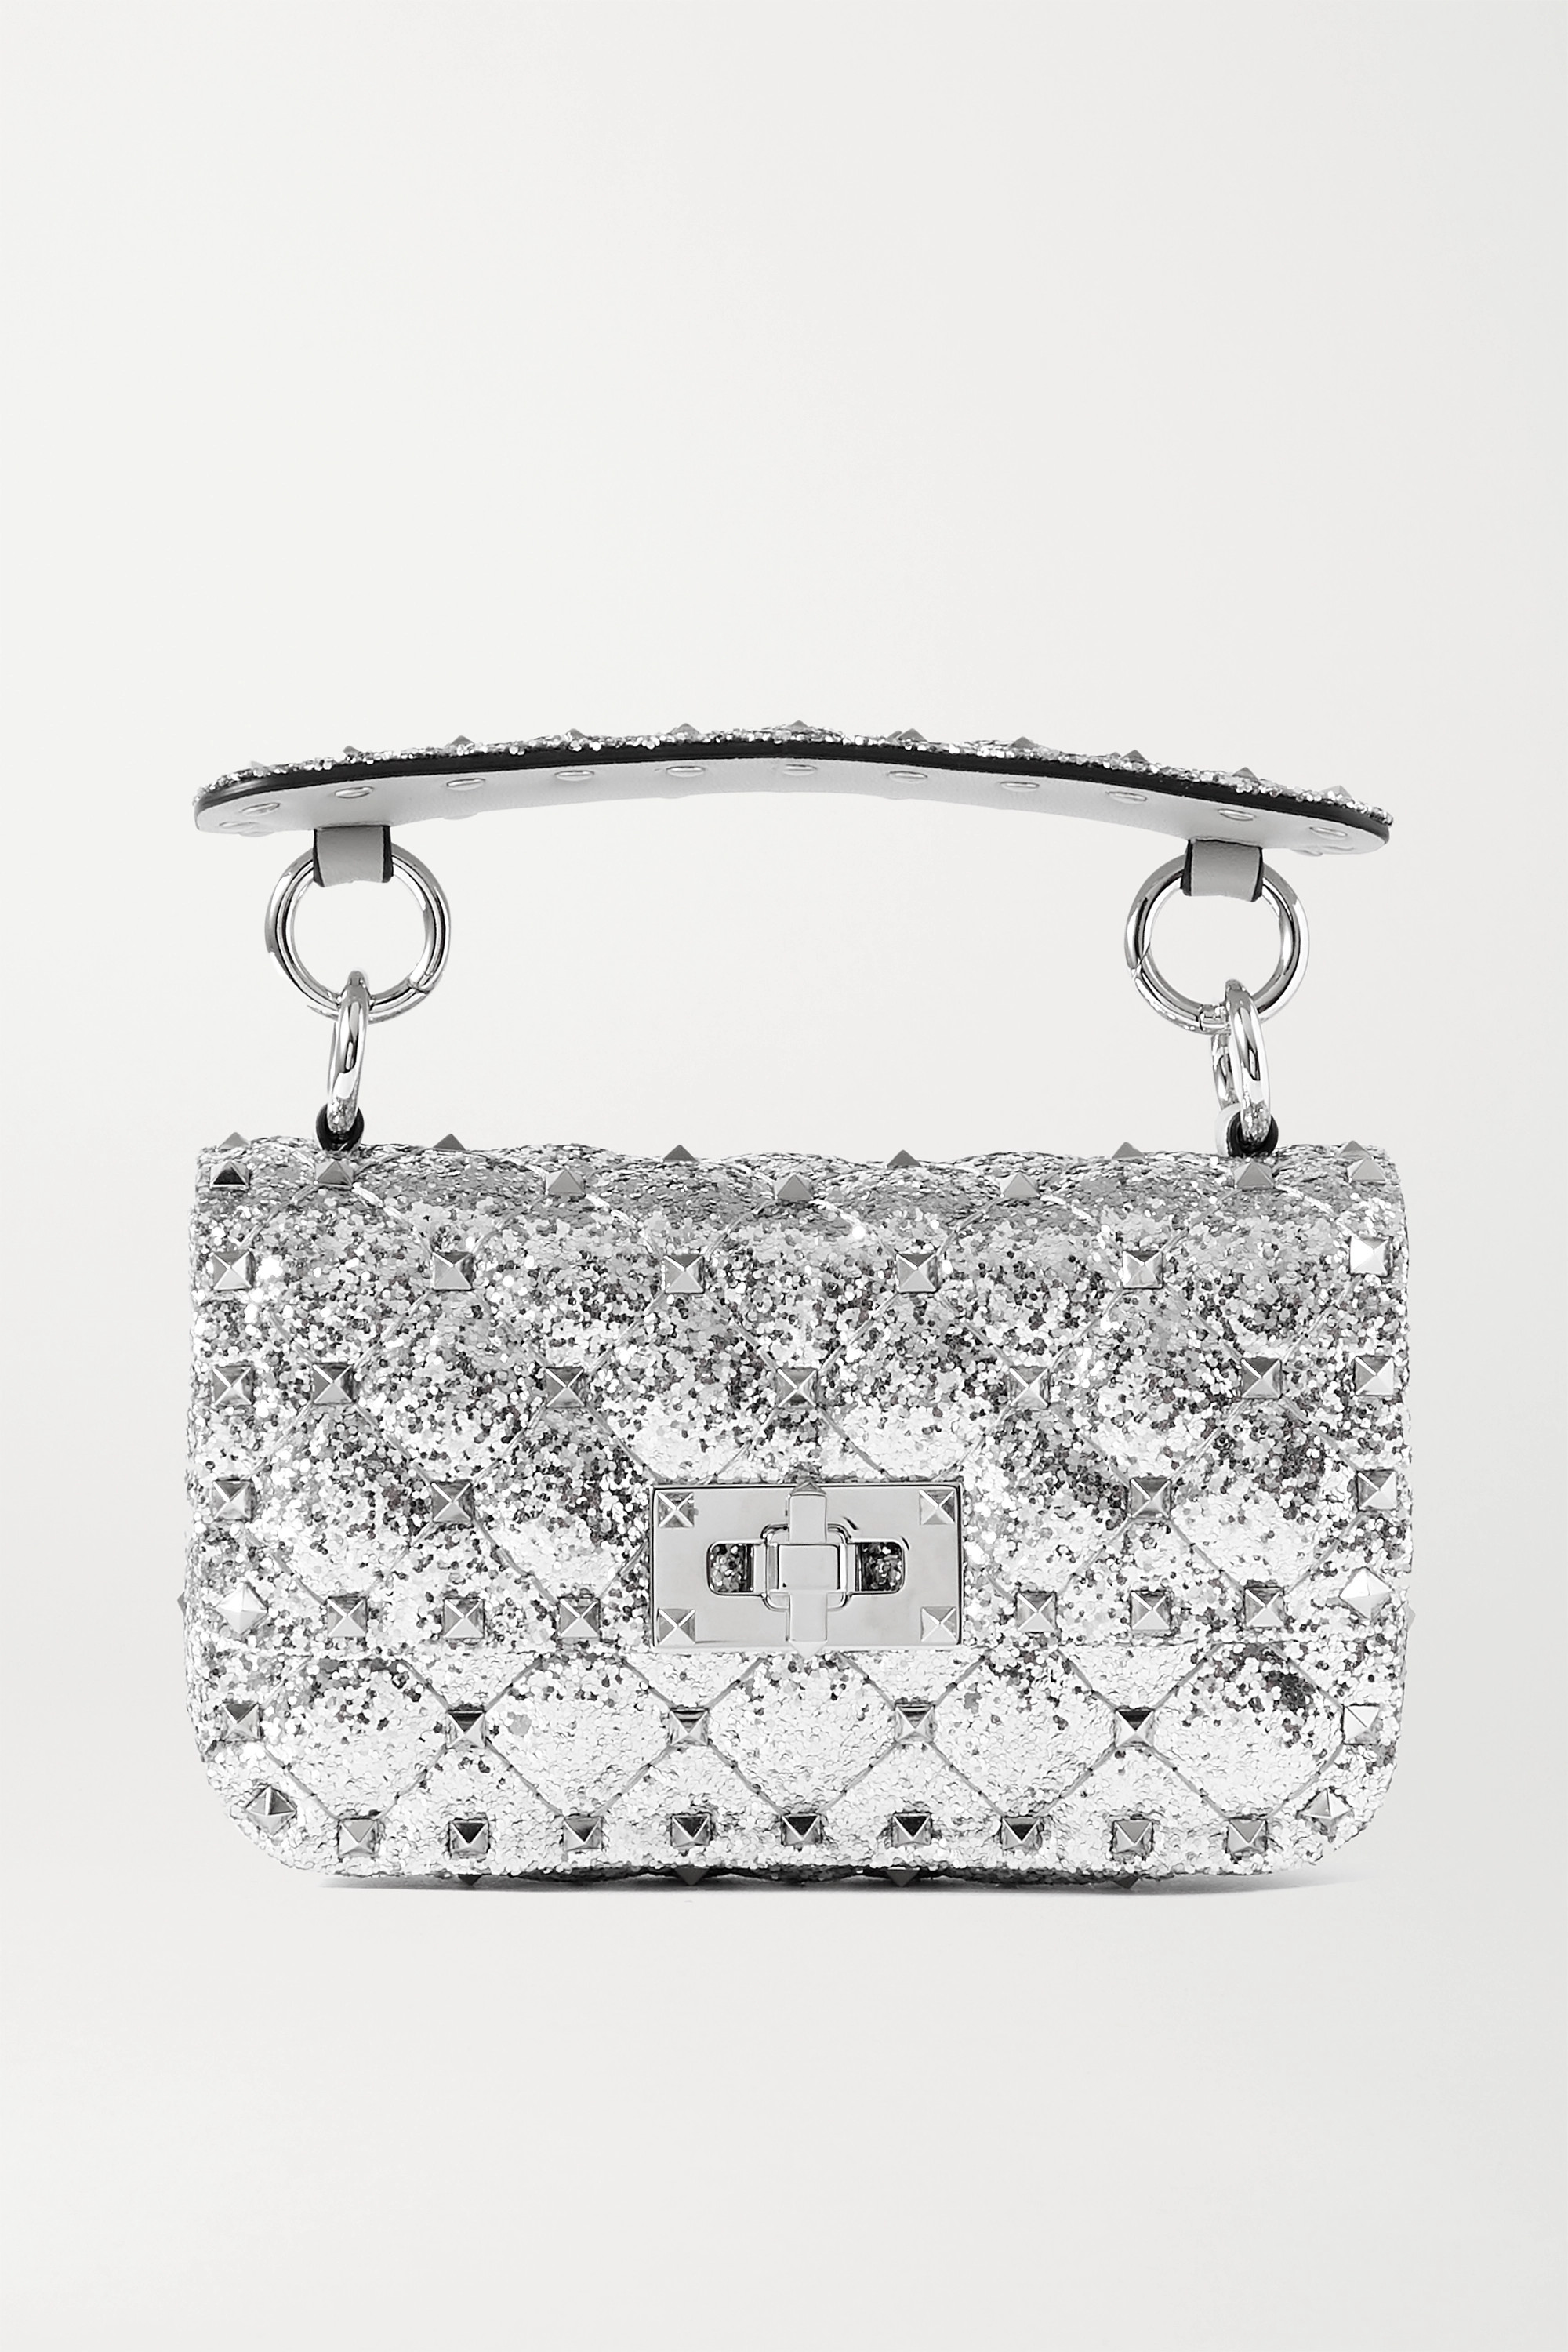 Valentino Valentino Garavani Rockstud Spike micro quilted glittered leather shoulder bag